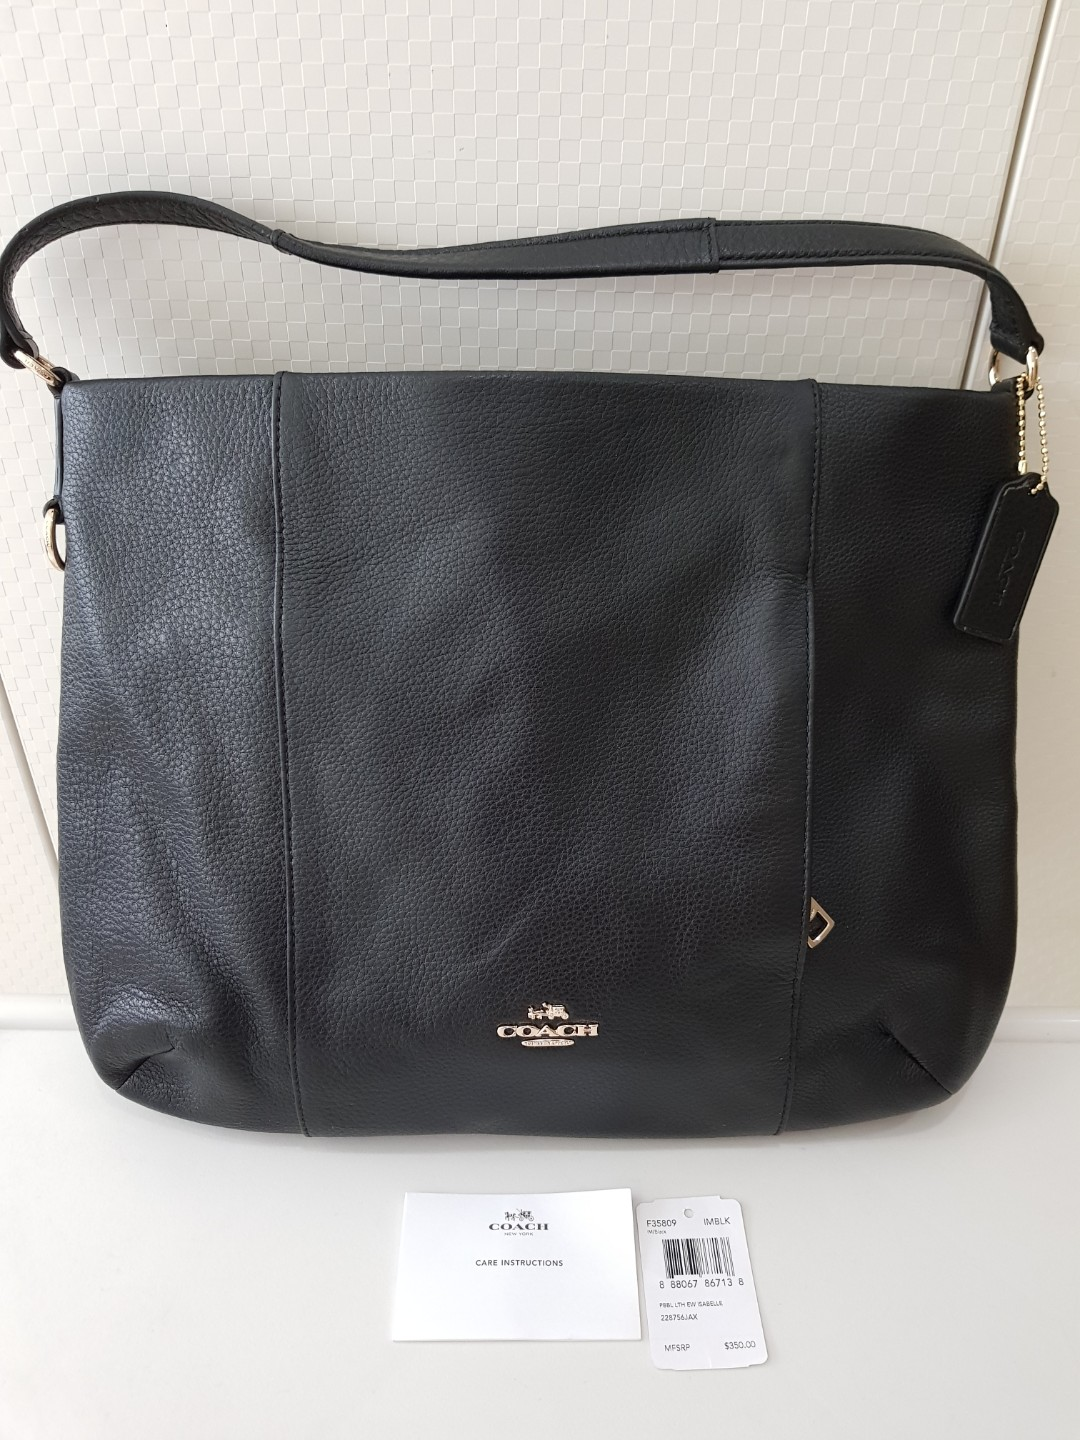 d7aba83a664a brand new Coach bag for sales